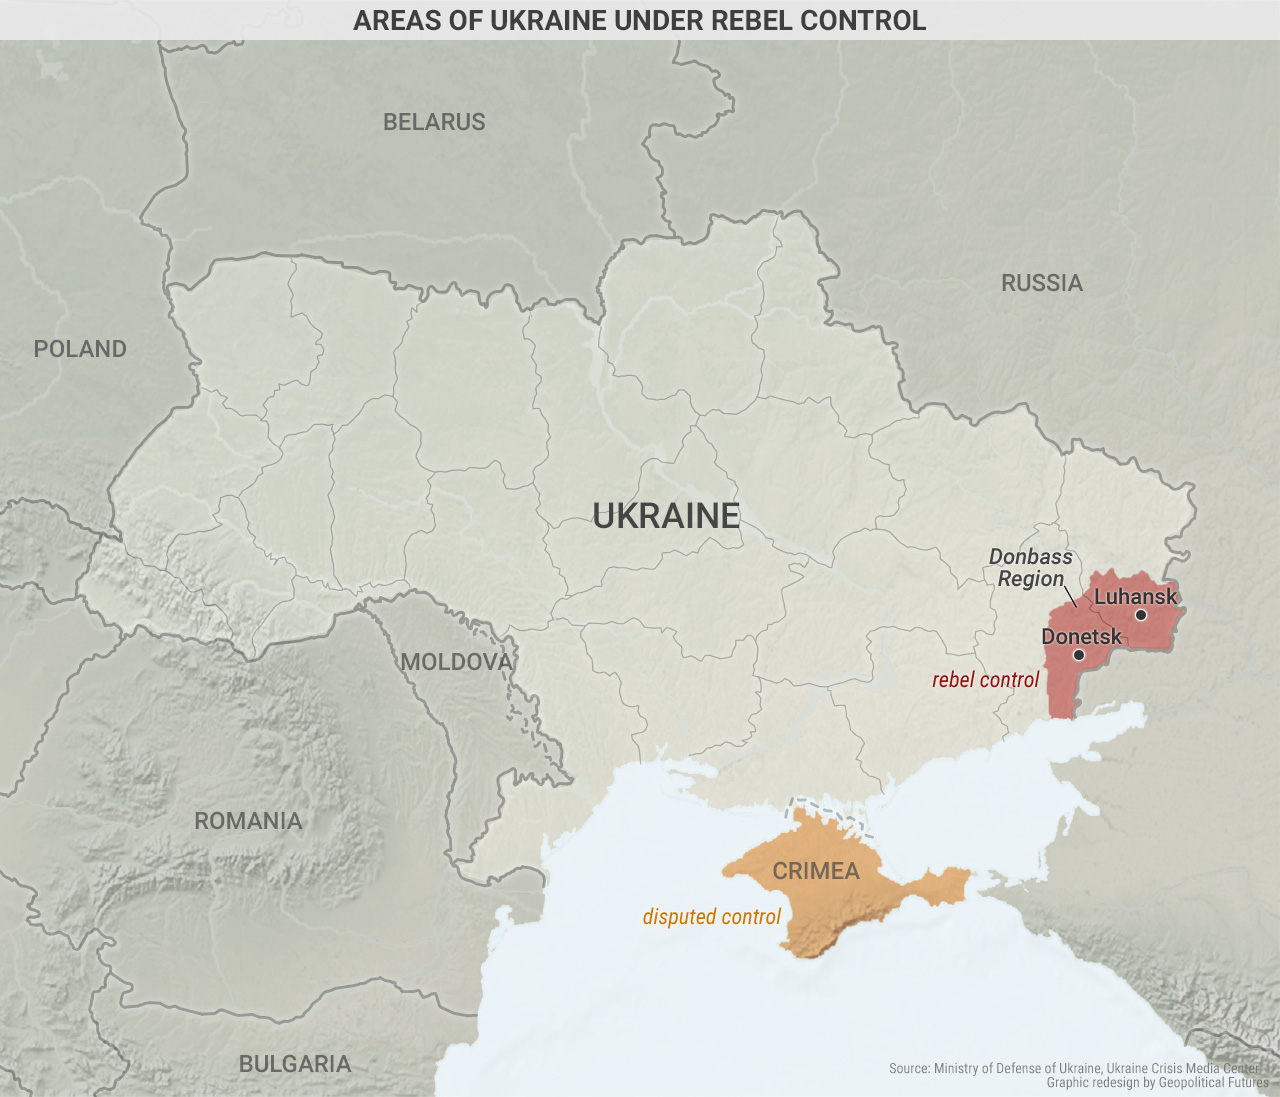 Areas of Ukraine Under Rebel Control